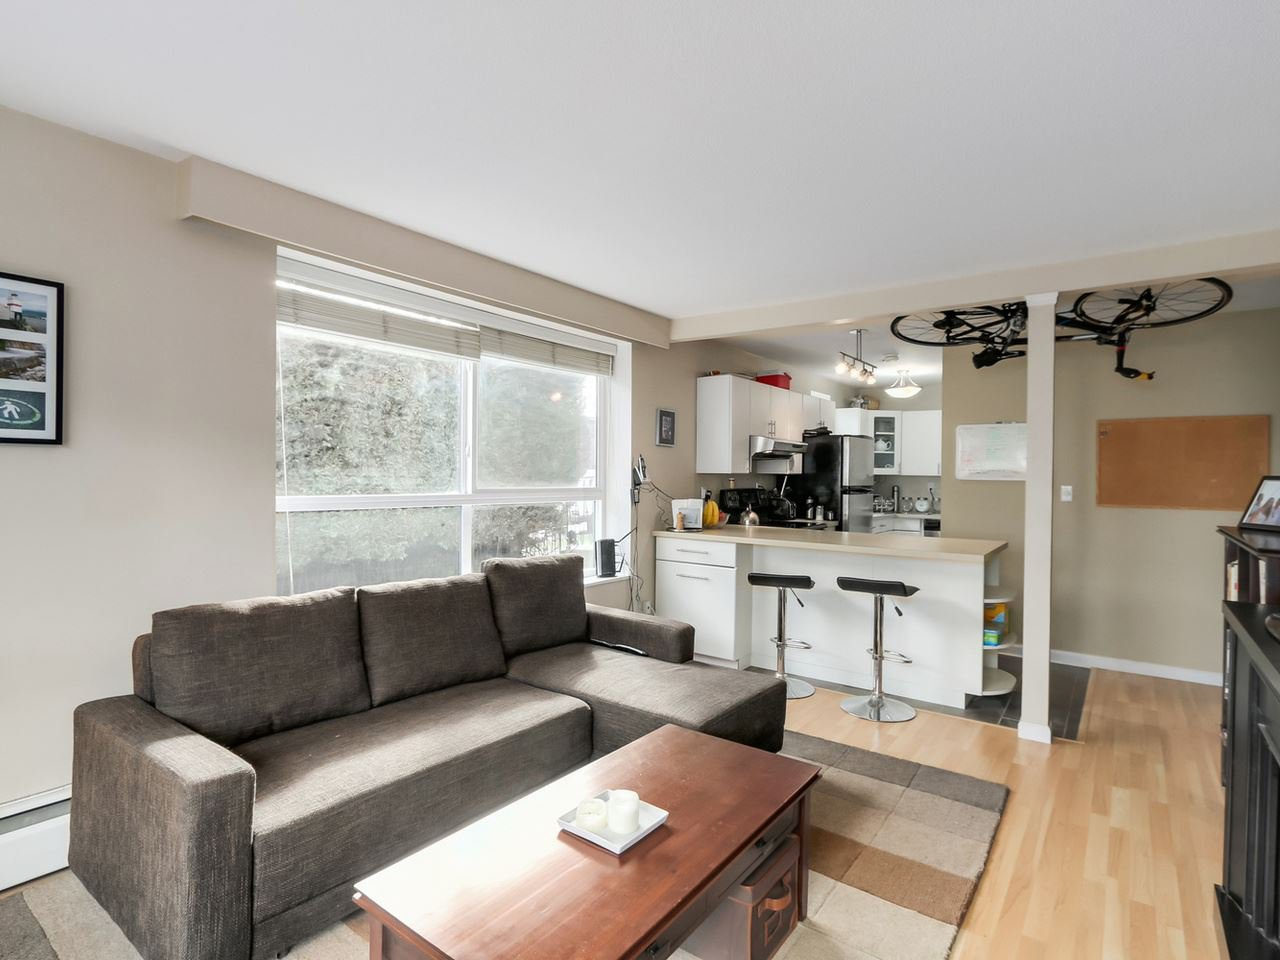 Main Photo: 103 8680 FREMLIN STREET in Vancouver: Marpole Condo for sale (Vancouver West)  : MLS®# R2050051